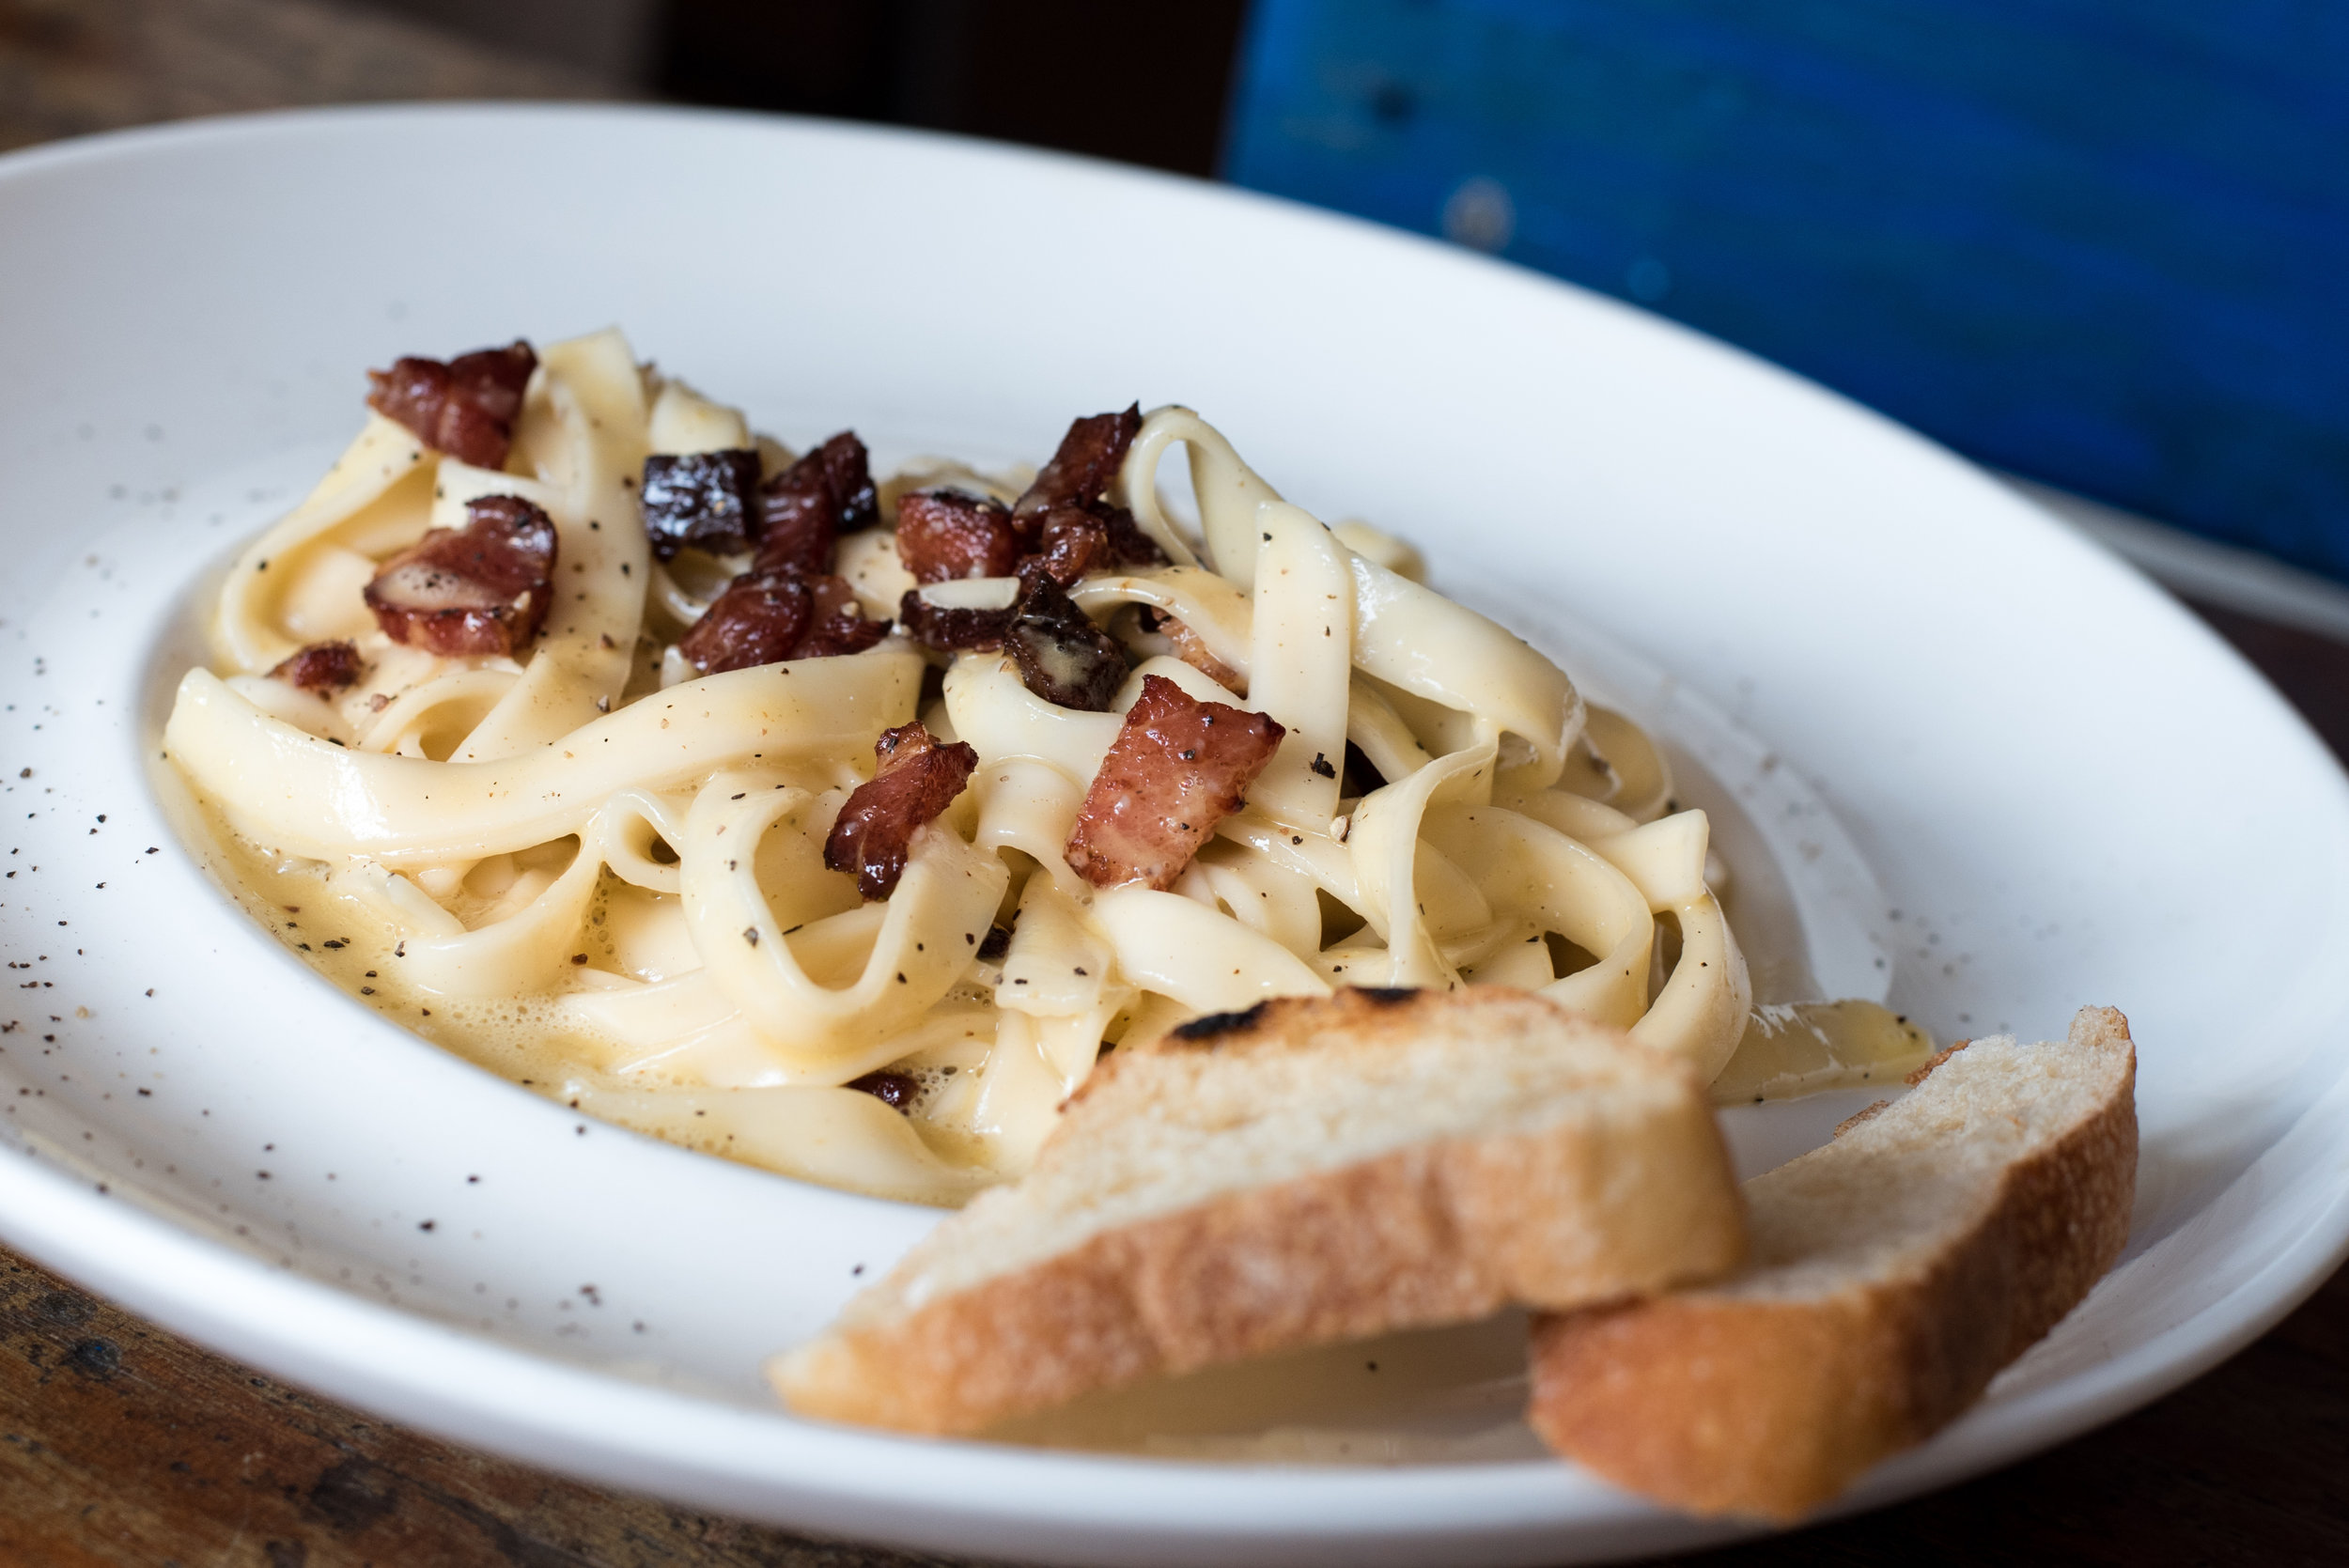 Canva - Pasta Dish With Bread on White Ceramic Plate.jpg